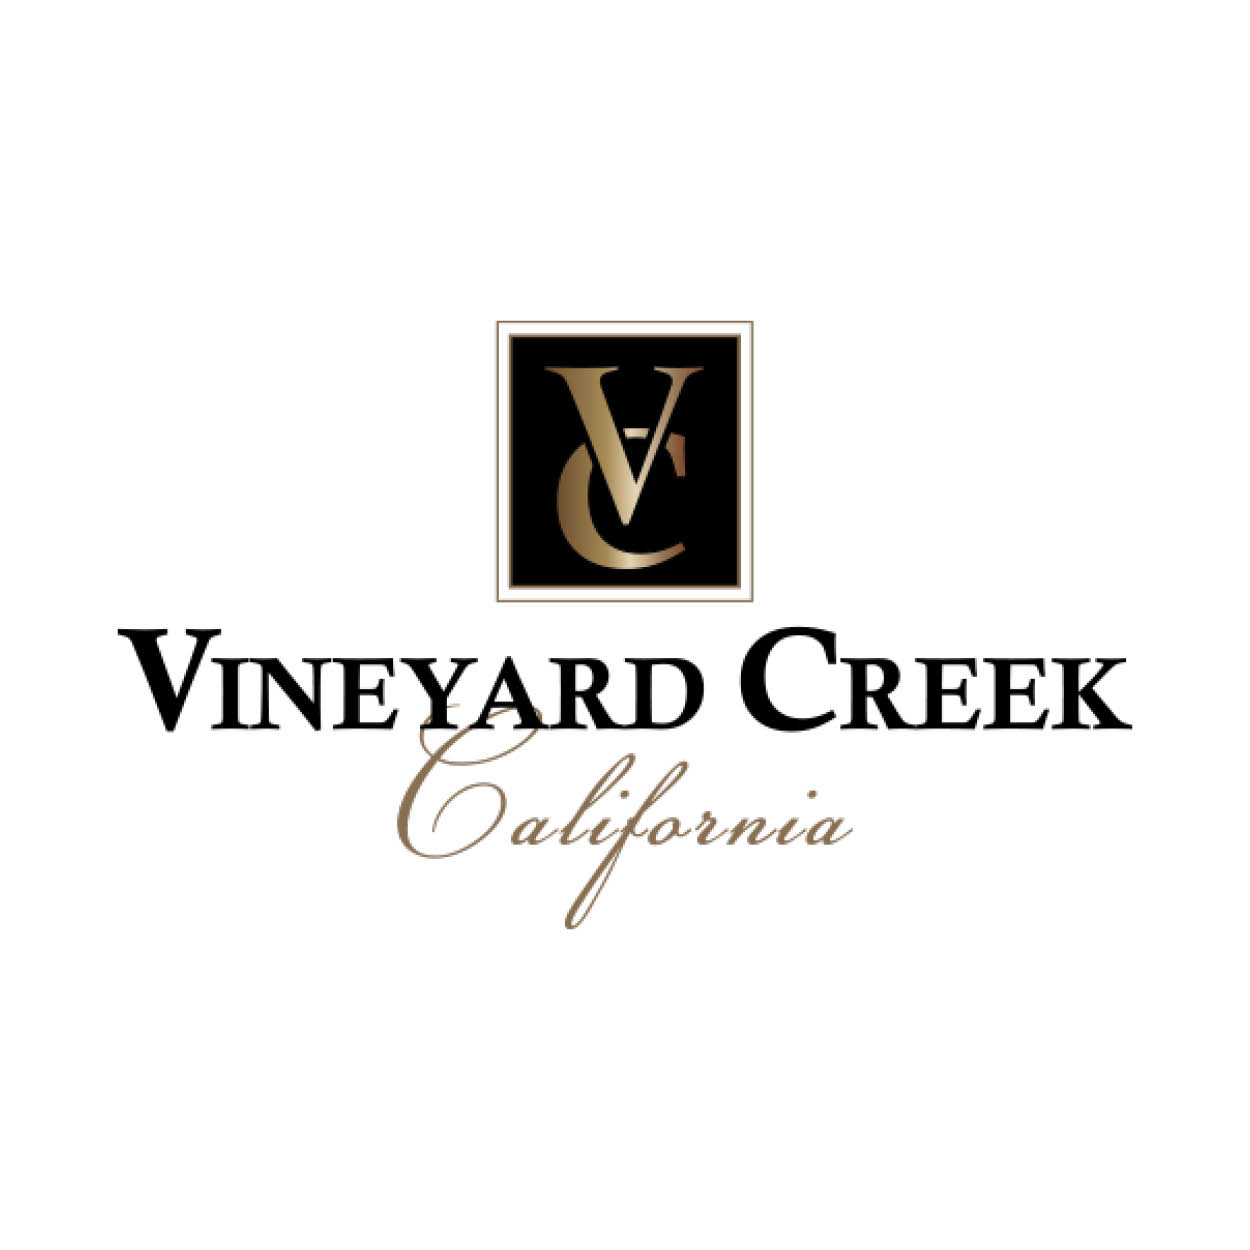 Vineyard Creek